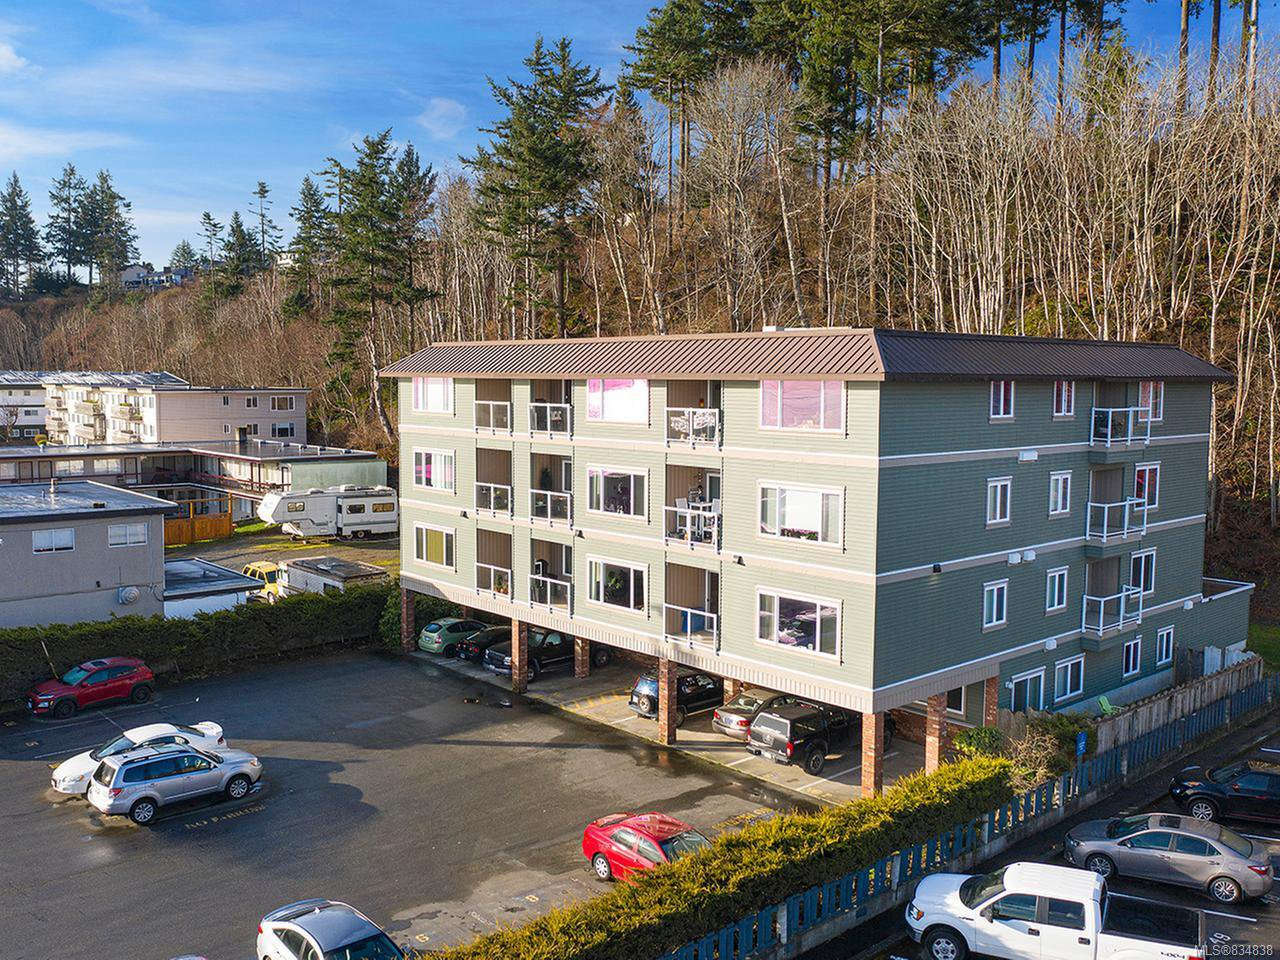 Photo 32: Photos: 301 894 S Island Hwy in CAMPBELL RIVER: CR Campbell River Central Condo for sale (Campbell River)  : MLS®# 834838